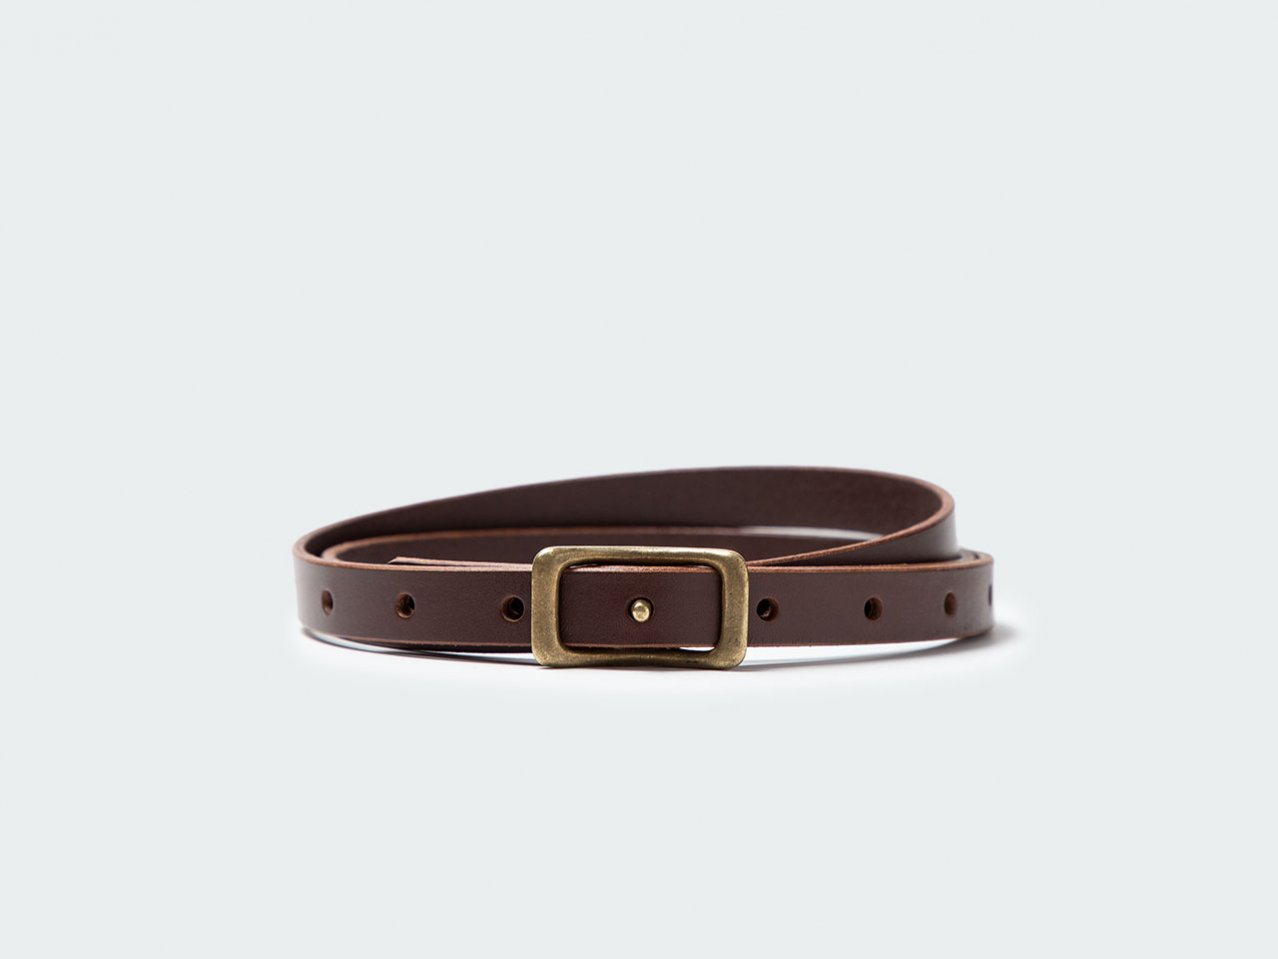 NARROW NAVEL BELT 15 / DARK BROWN